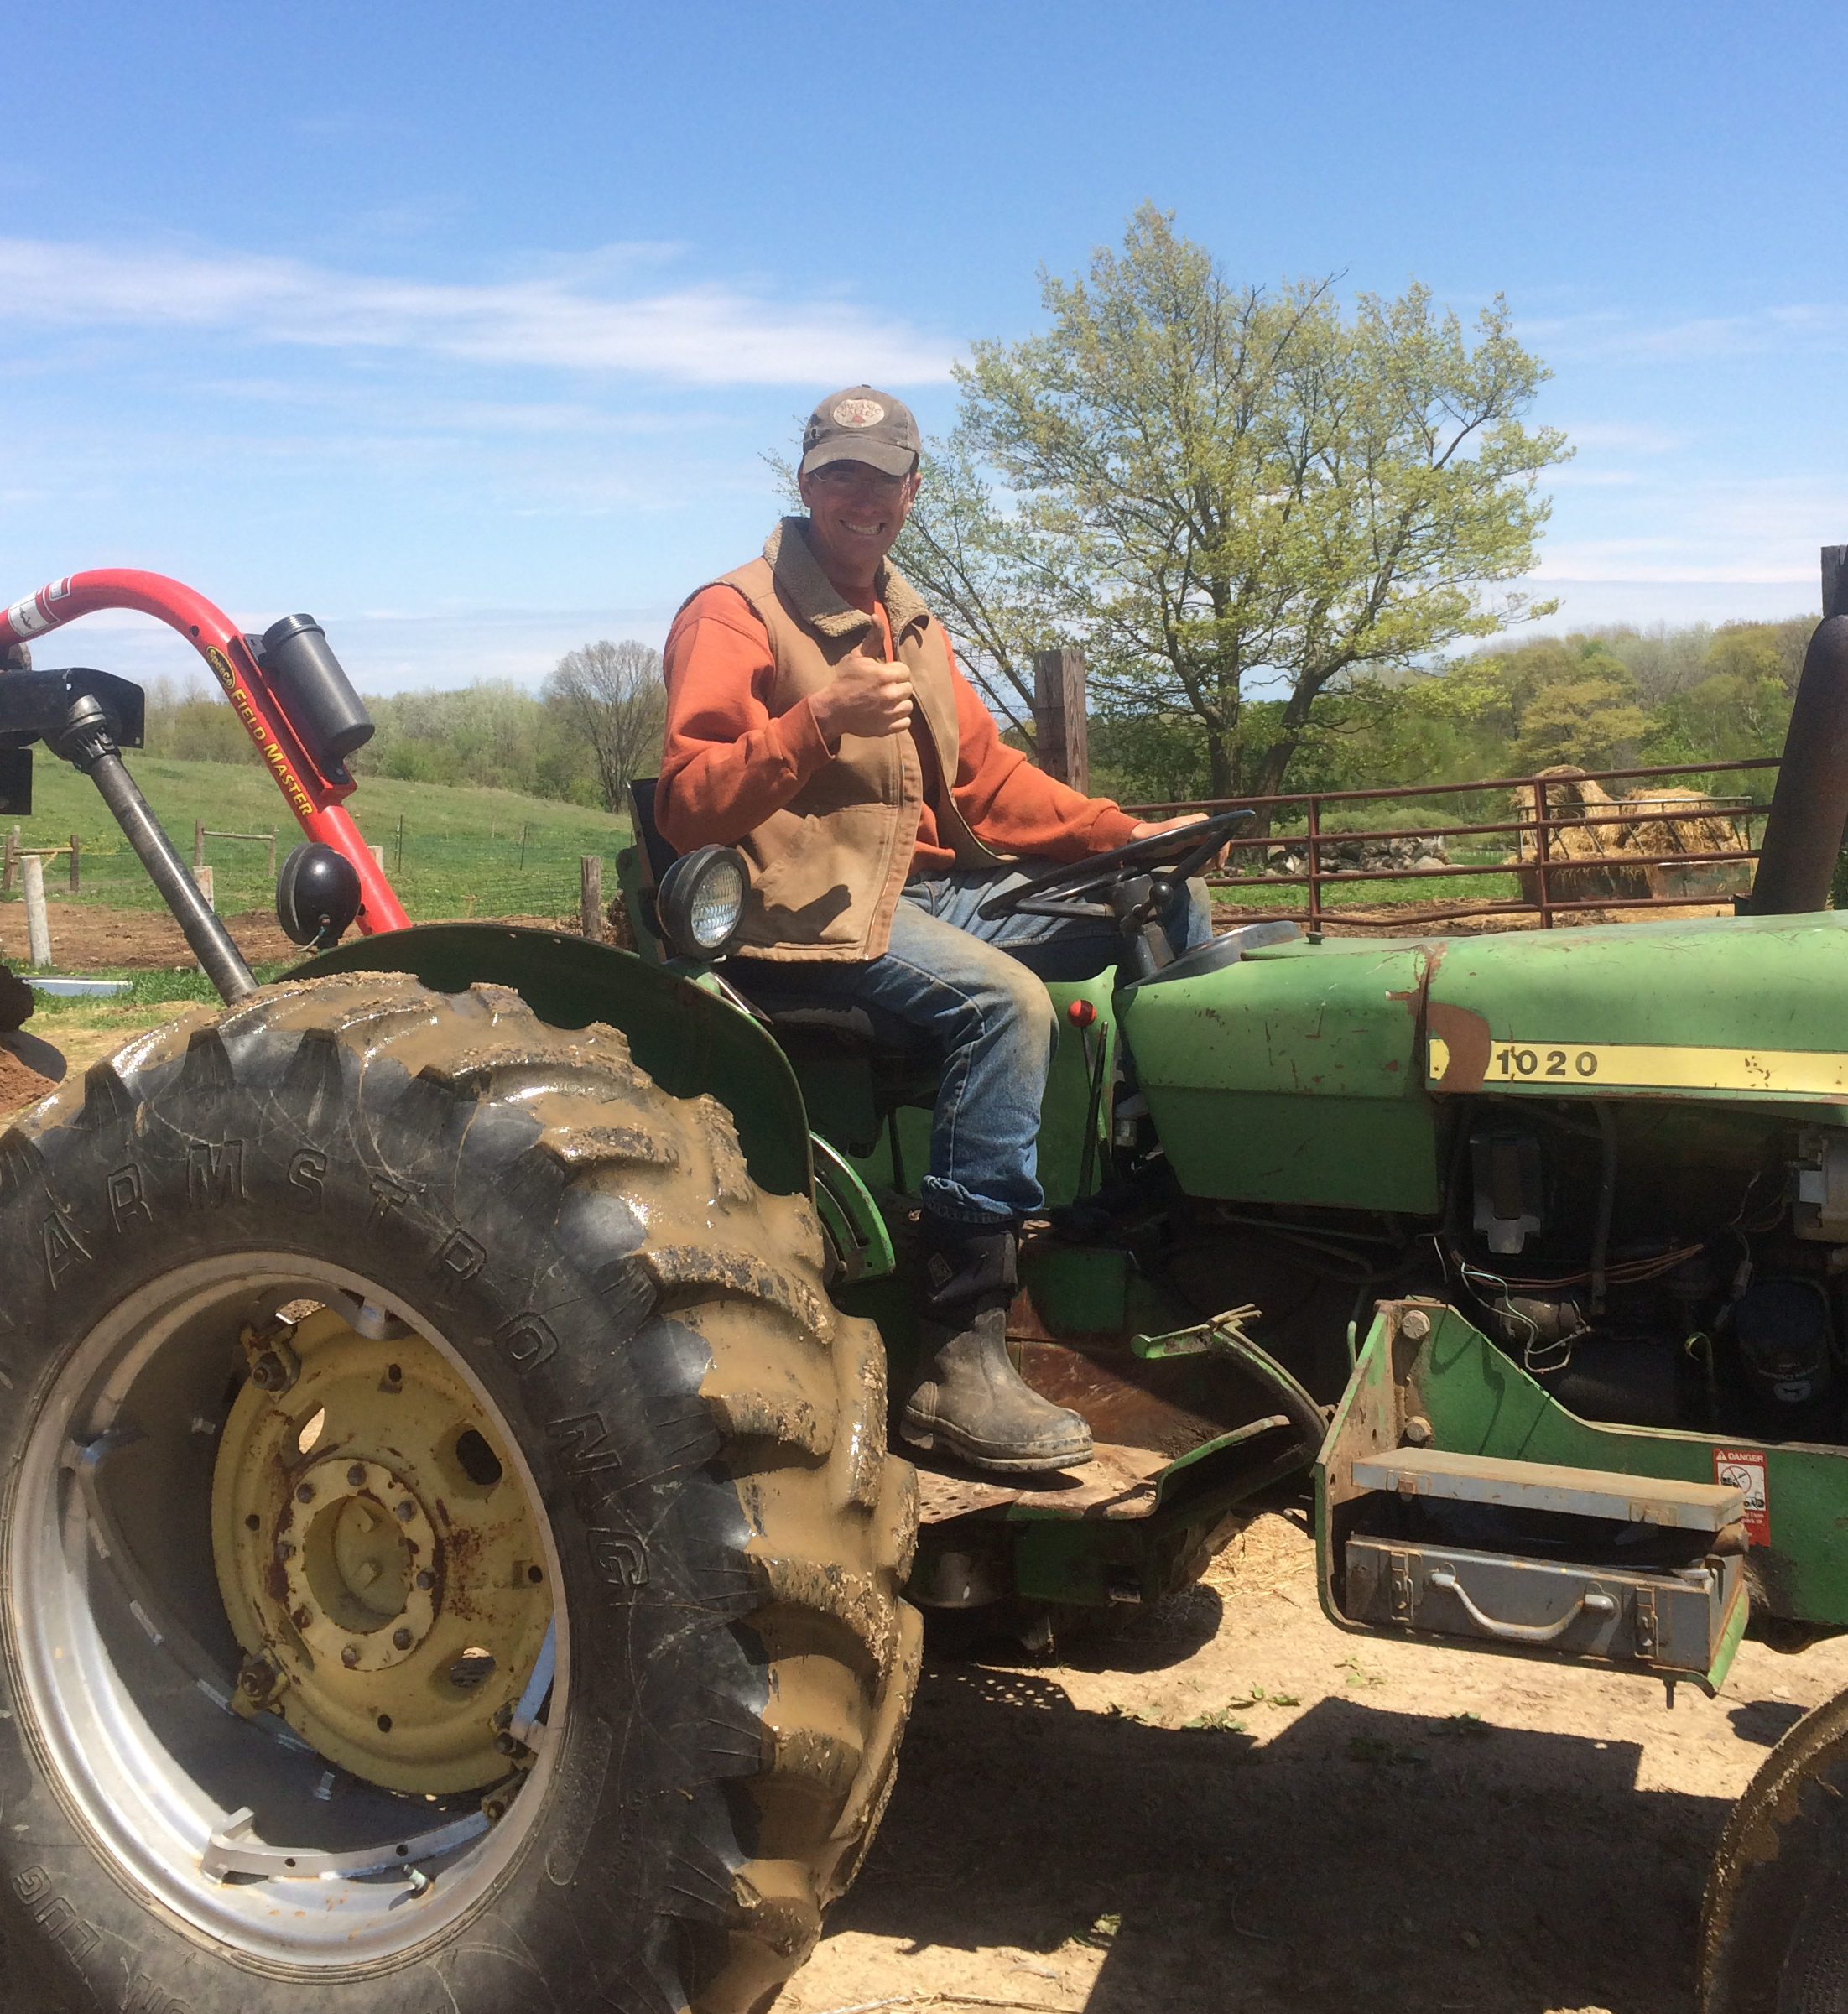 a happy farmer on his tractor on a beautiful day